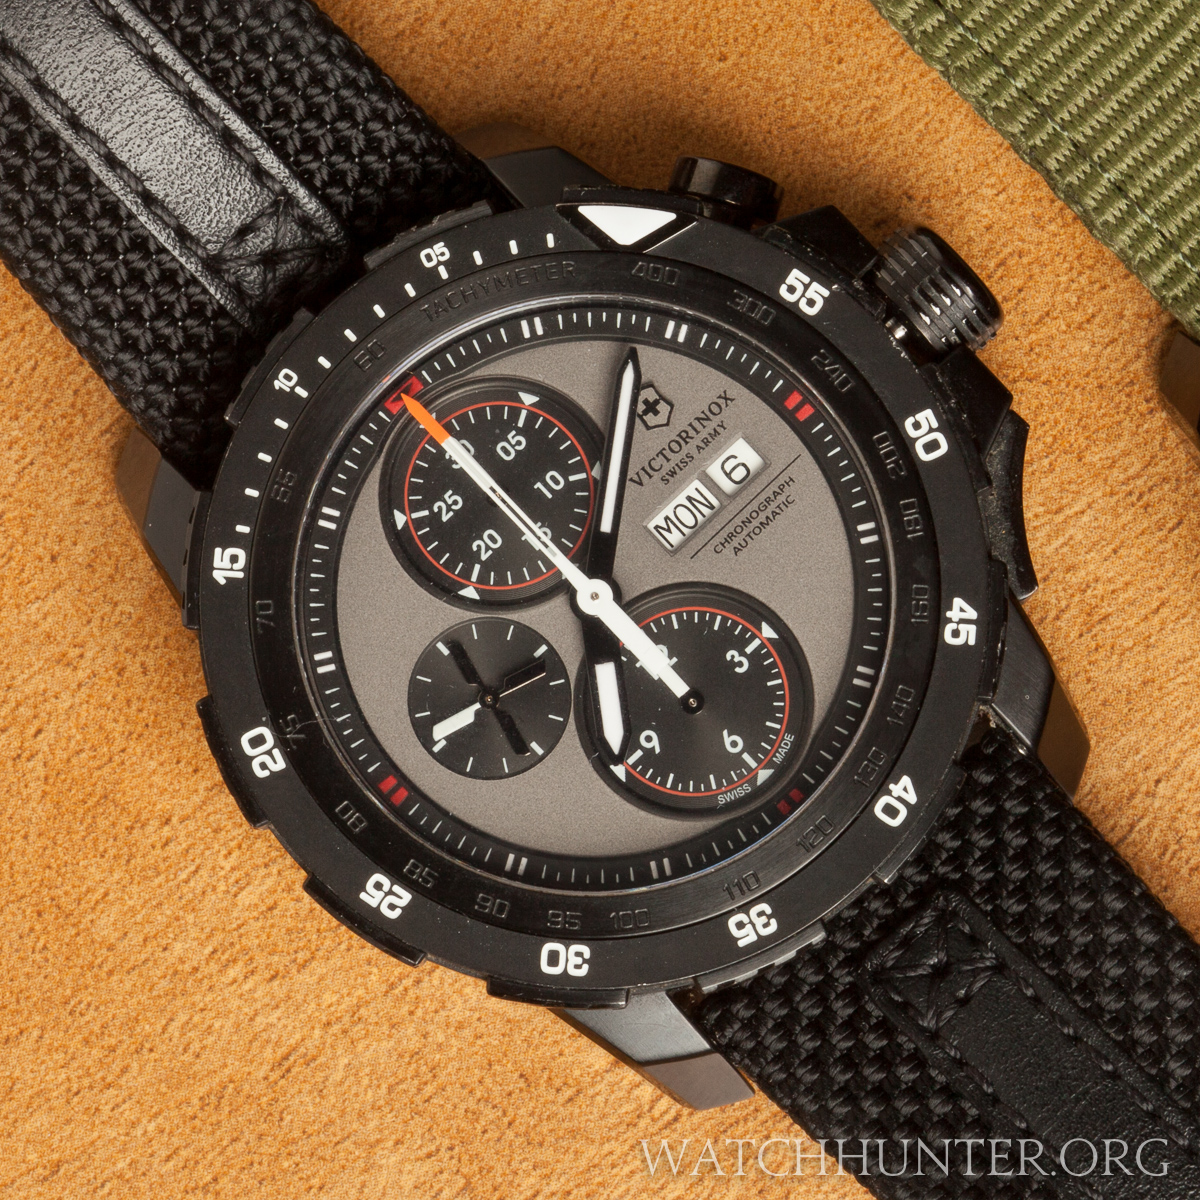 This model has red and orange accents against black and gray. It is military chic.